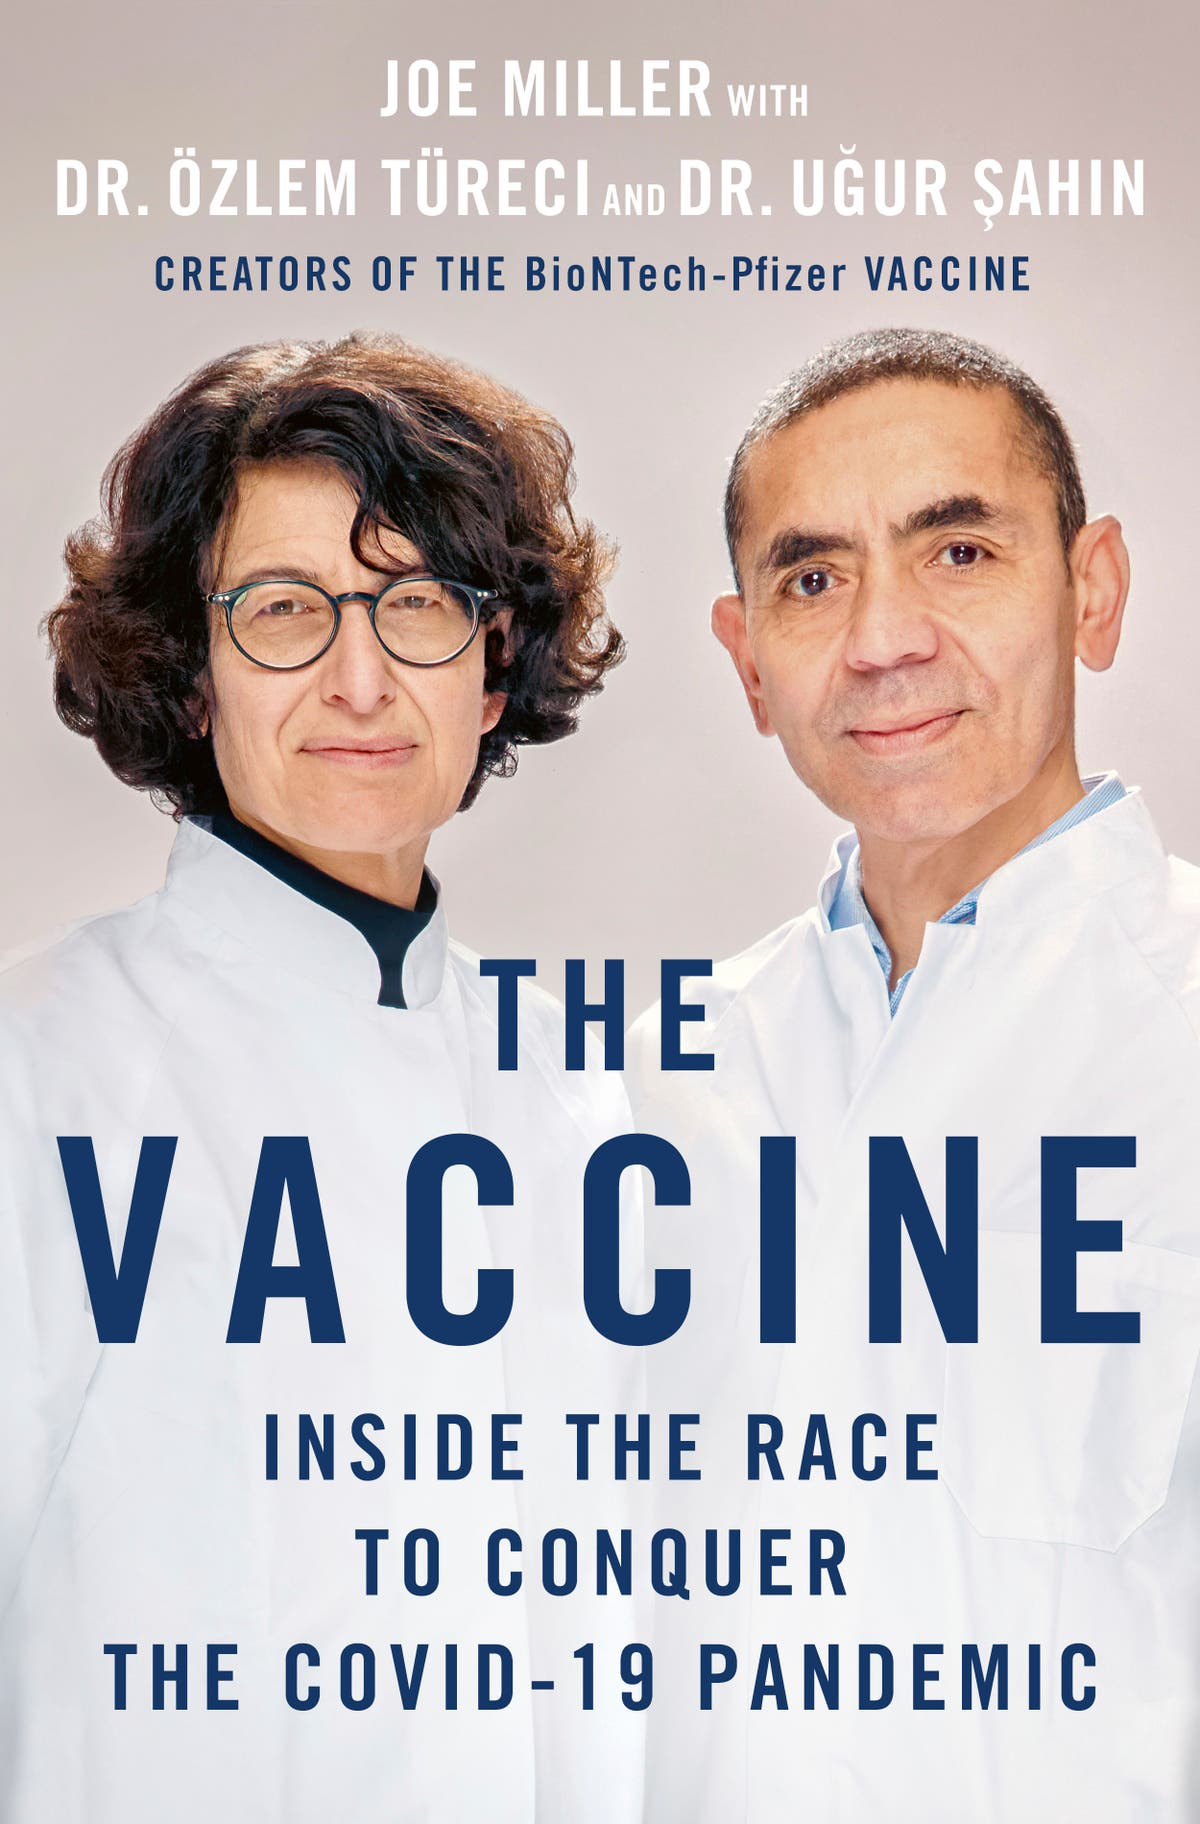 BioNTech founders contributing to book on COVID-19 vaccine